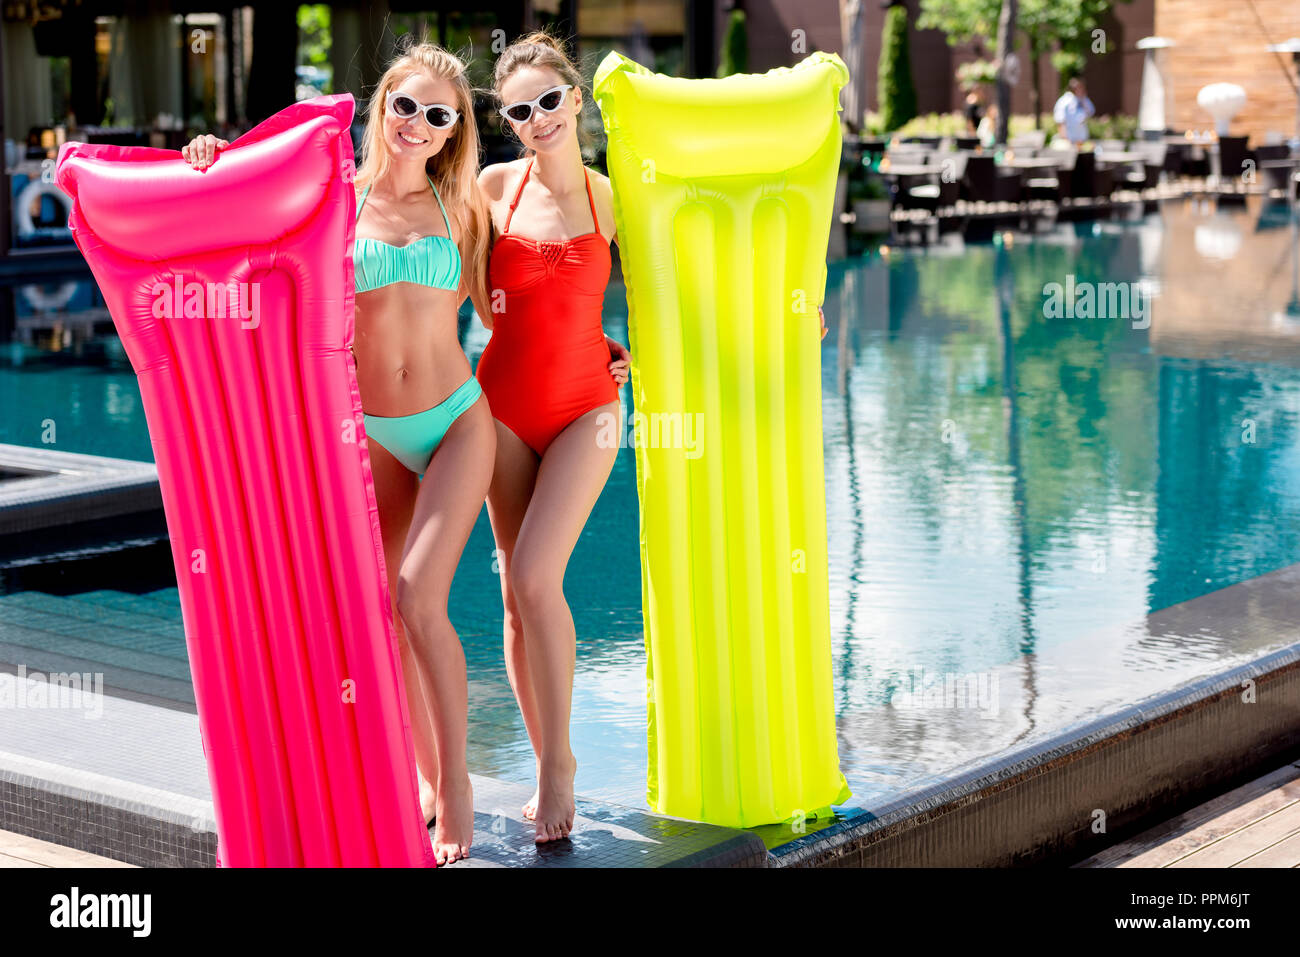 beautiful young women with inflatable mattresses standing at poolside and looking at camera - Stock Image